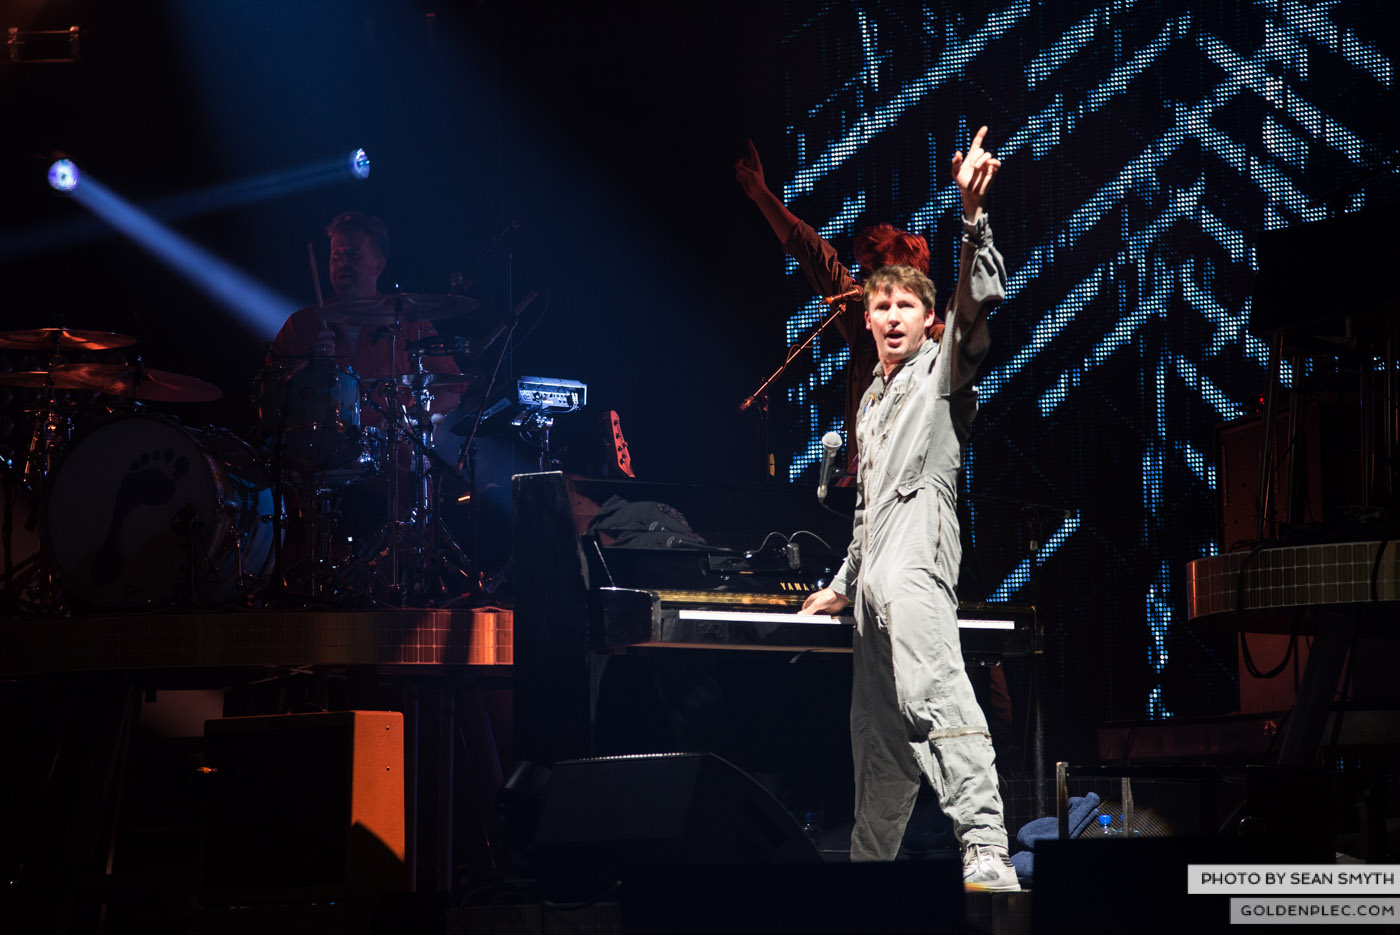 james-blunt-at-3arena-by-sean-smyth-20-11-14-9-of-29